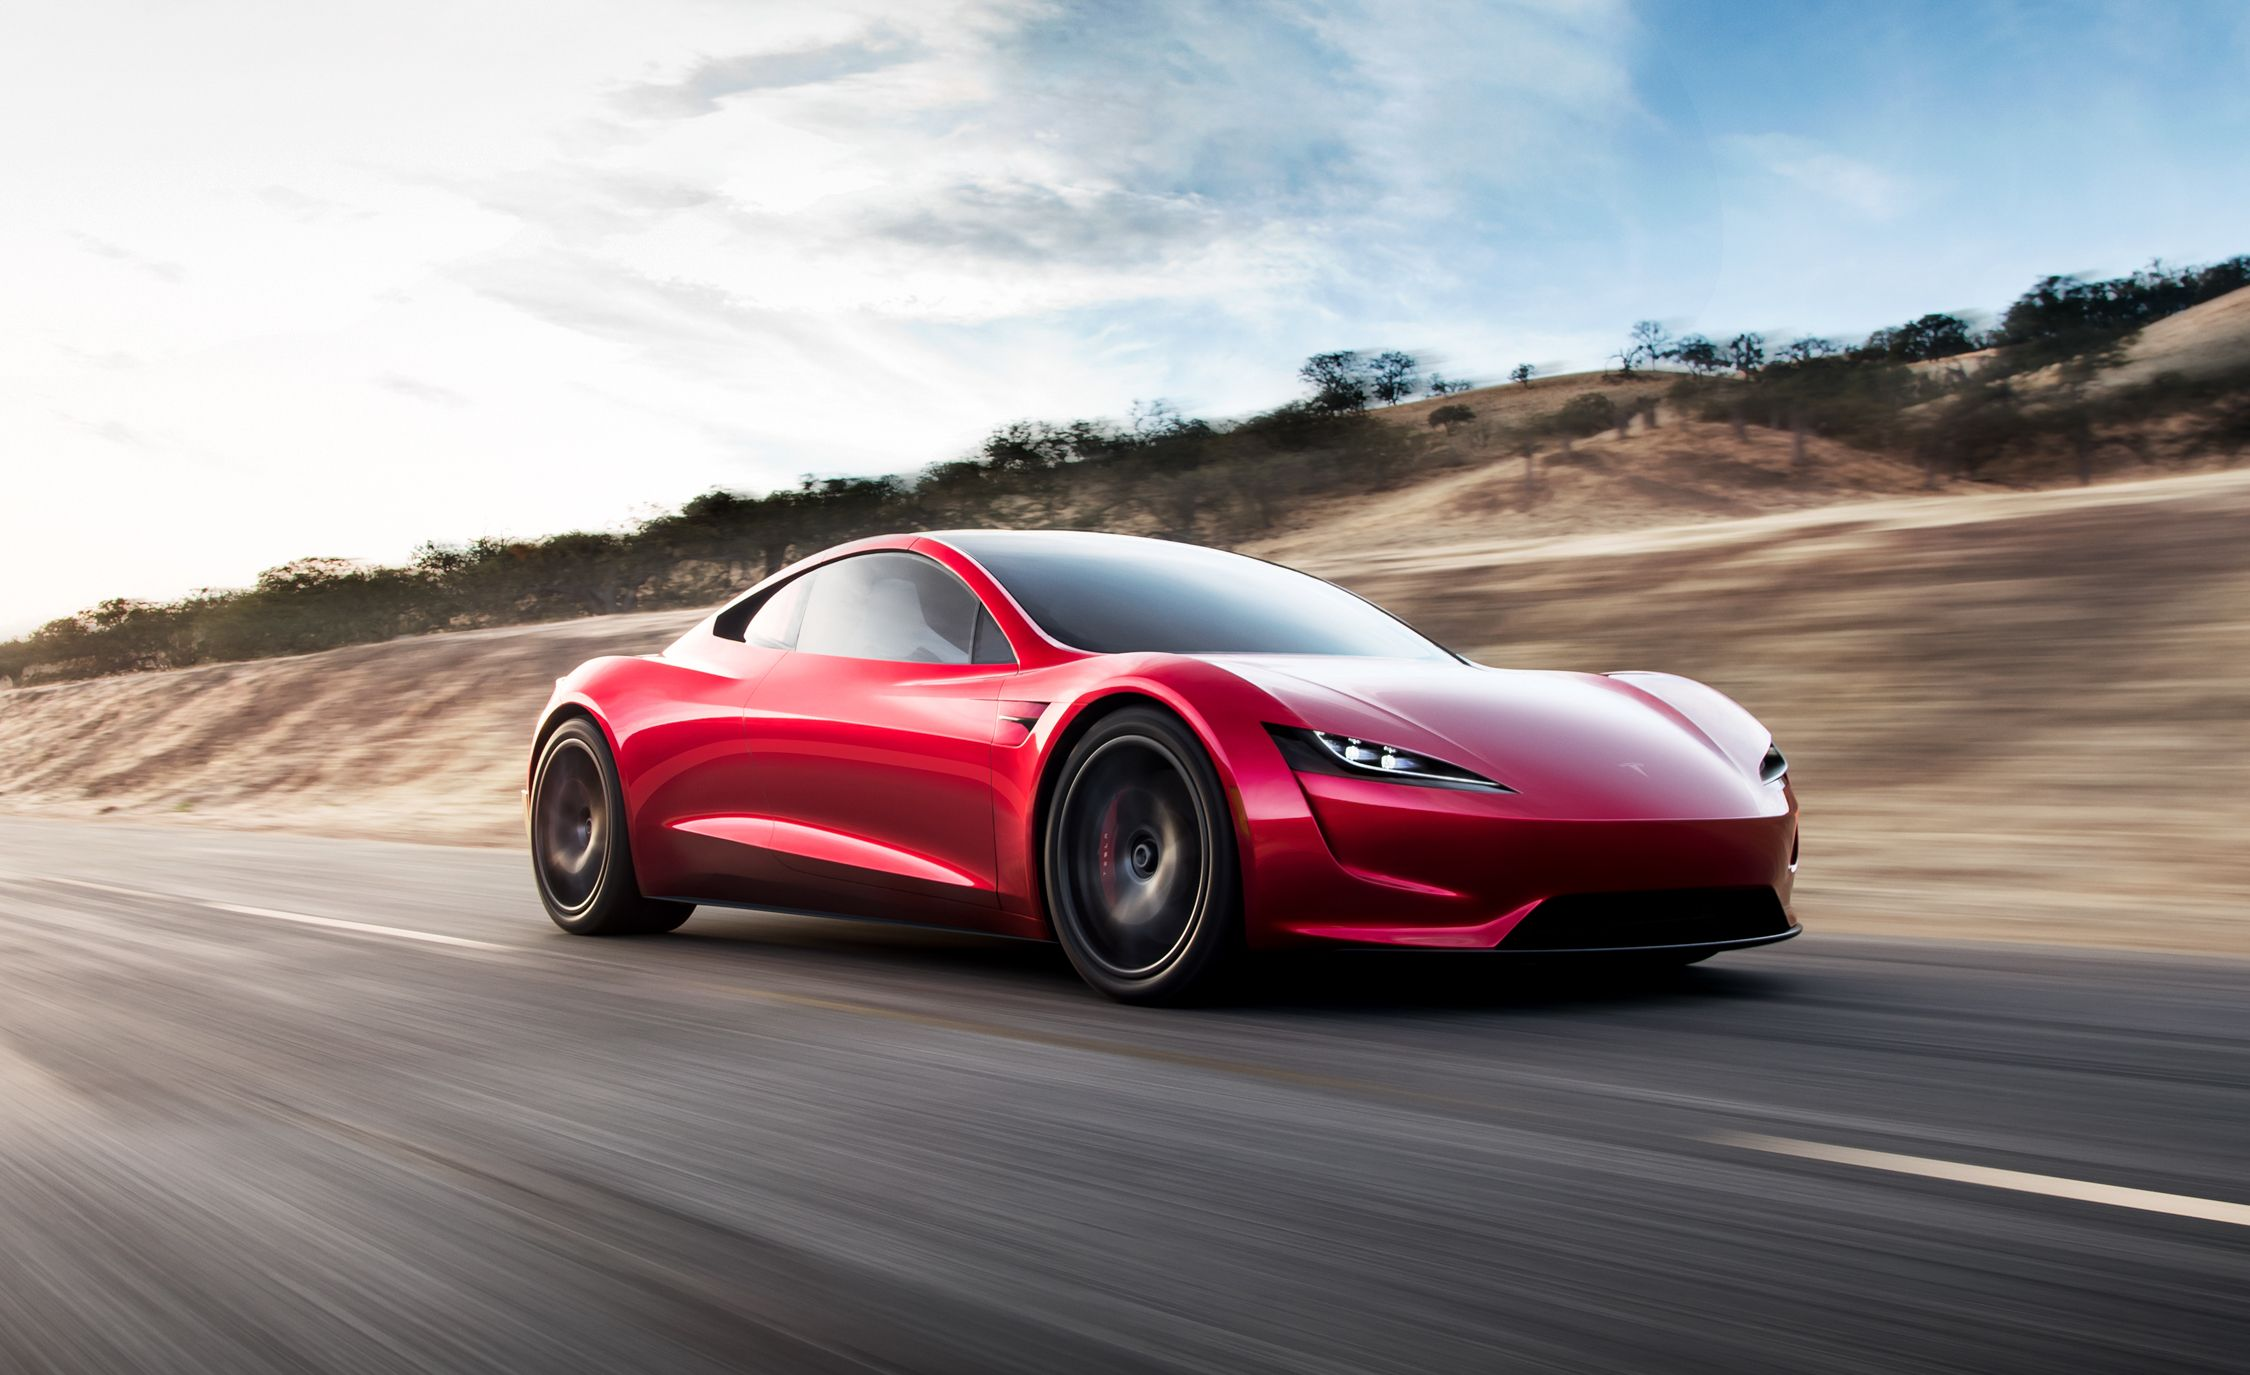 New Tesla Roadster 0 60 In 1 9 Sec 250 Mph Top Speed 620 Mile